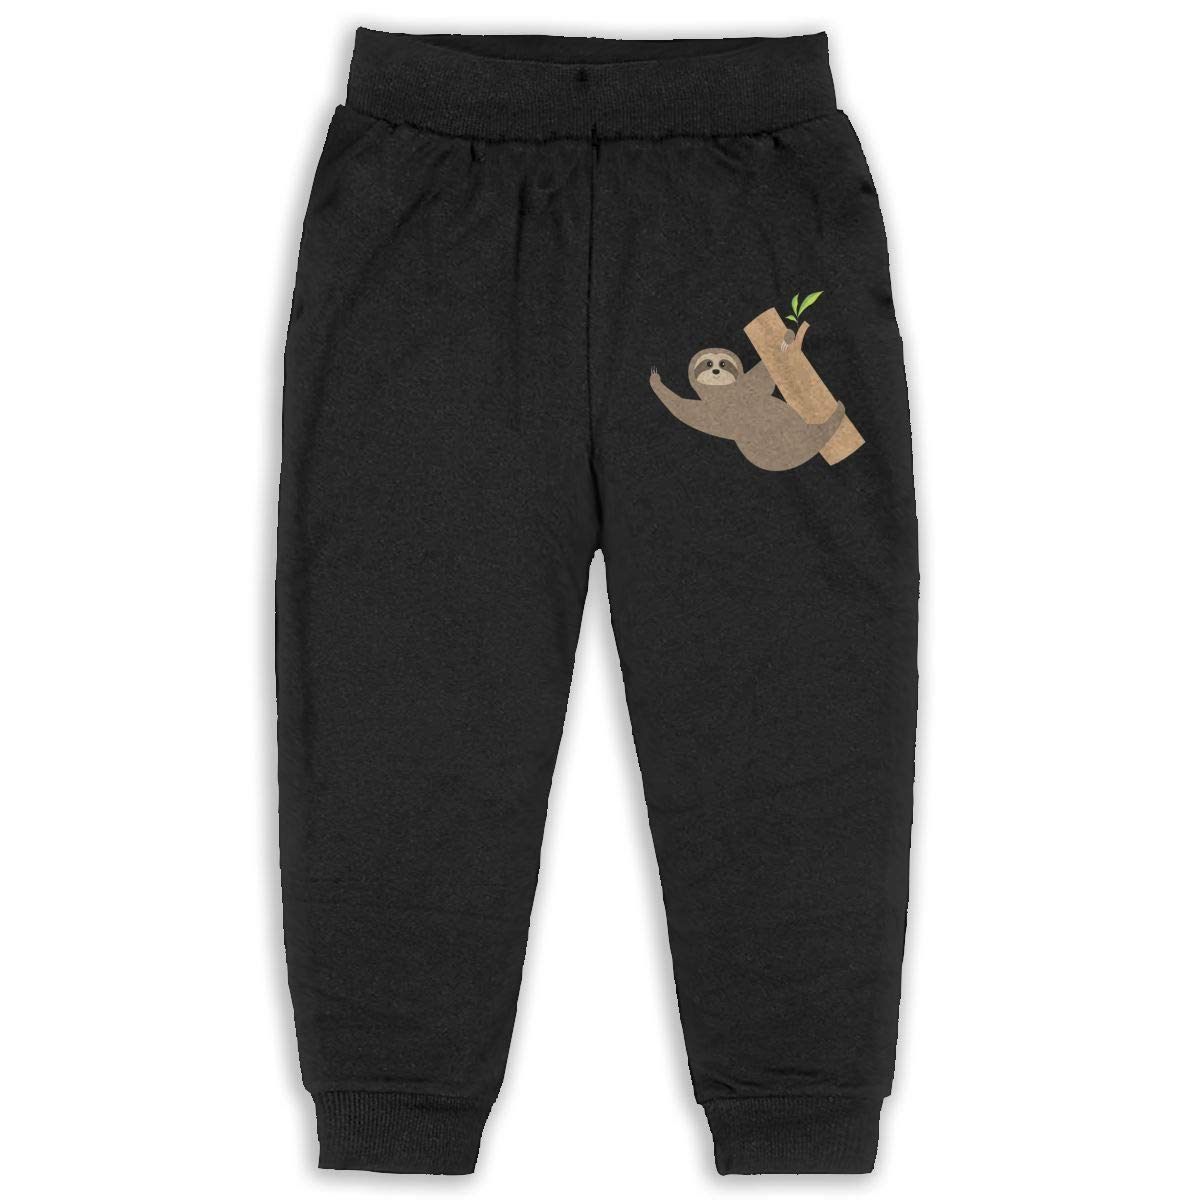 Uyikuvt Sweatpants Sloth Pattern Cotton Toddler Active Jogger Full-Length Regular Size Pants Kids